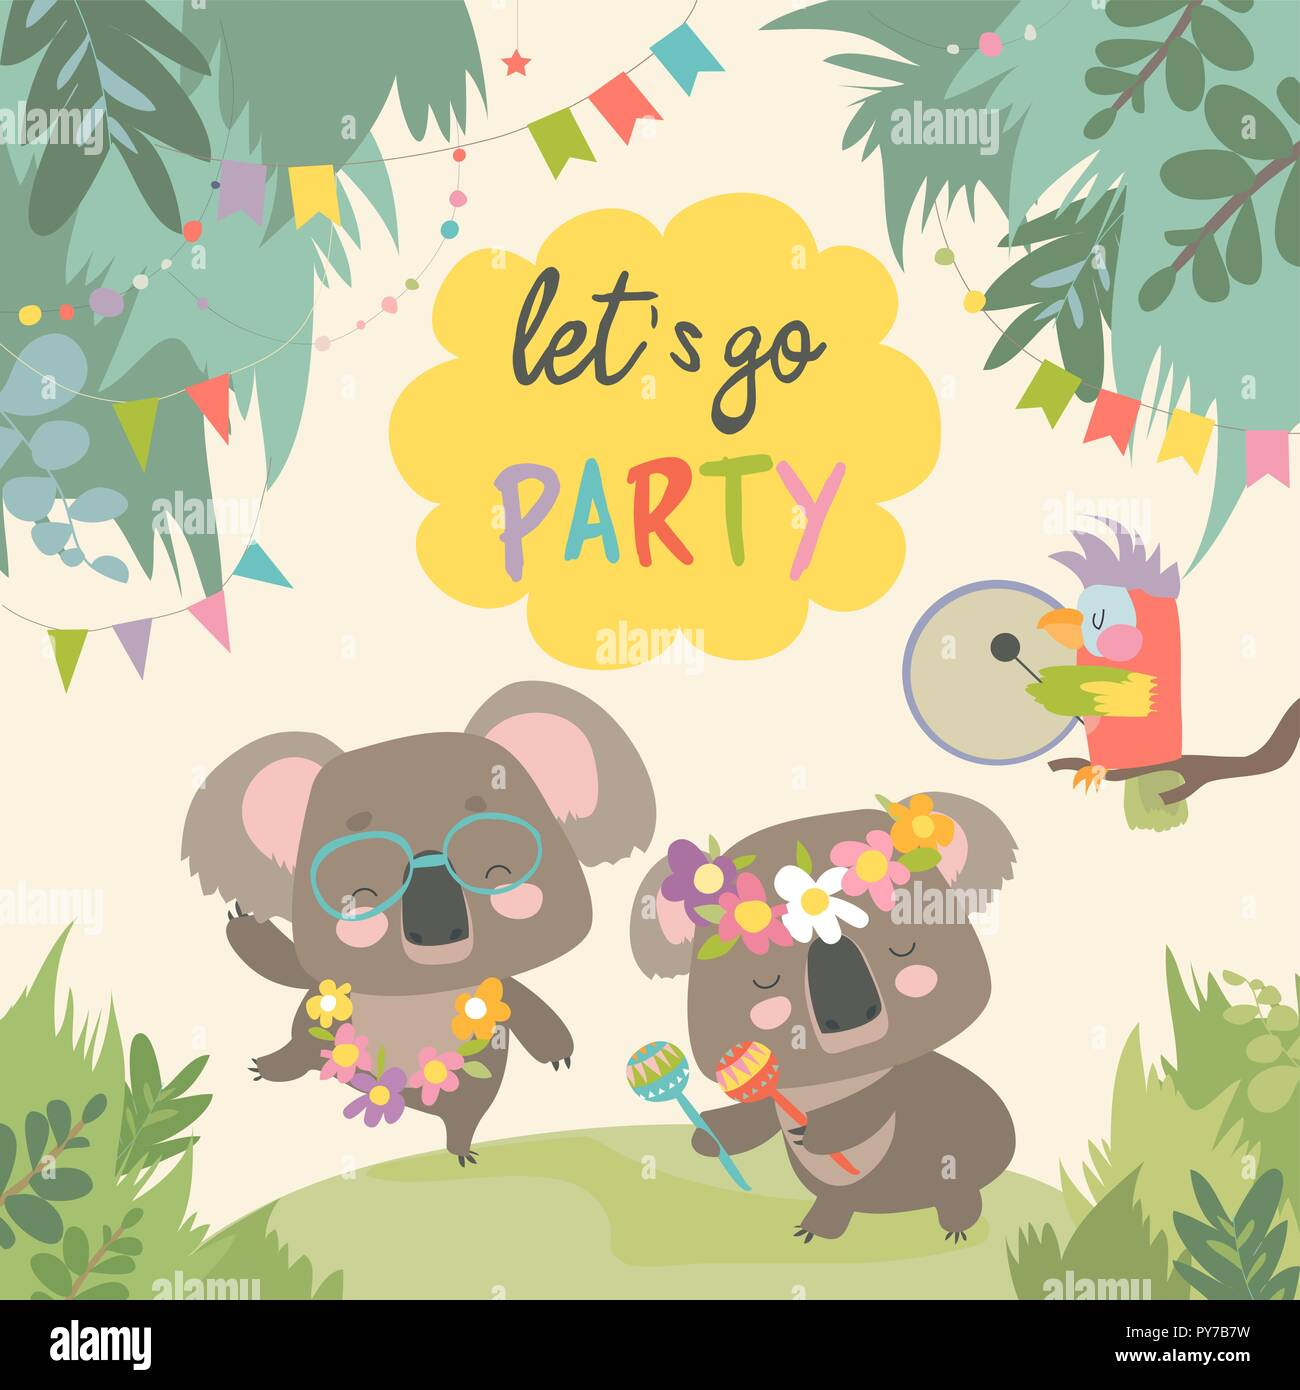 Cute koala dancing with friend on lawn - Stock Vector